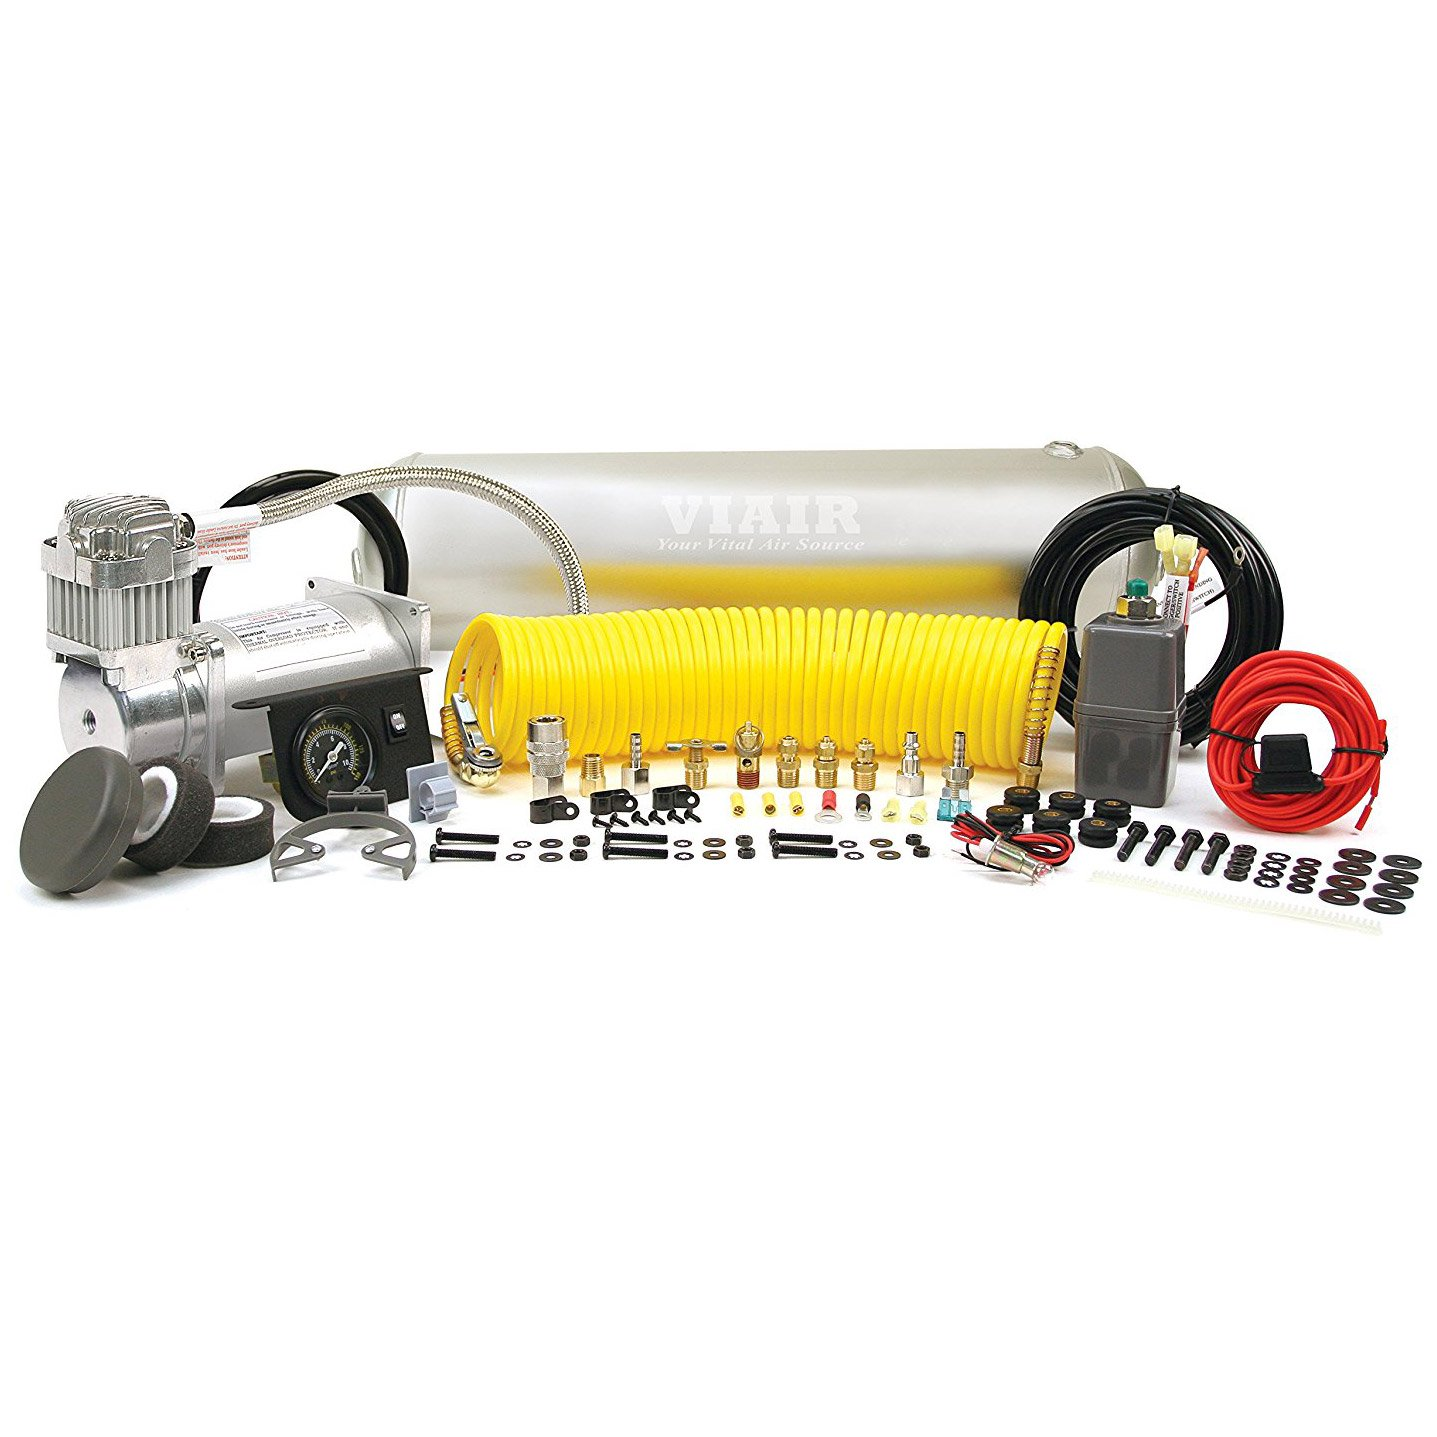 Viair Heavy Duty 150 PSI Onboard Air System Compressor for up to 35 Inch Tires